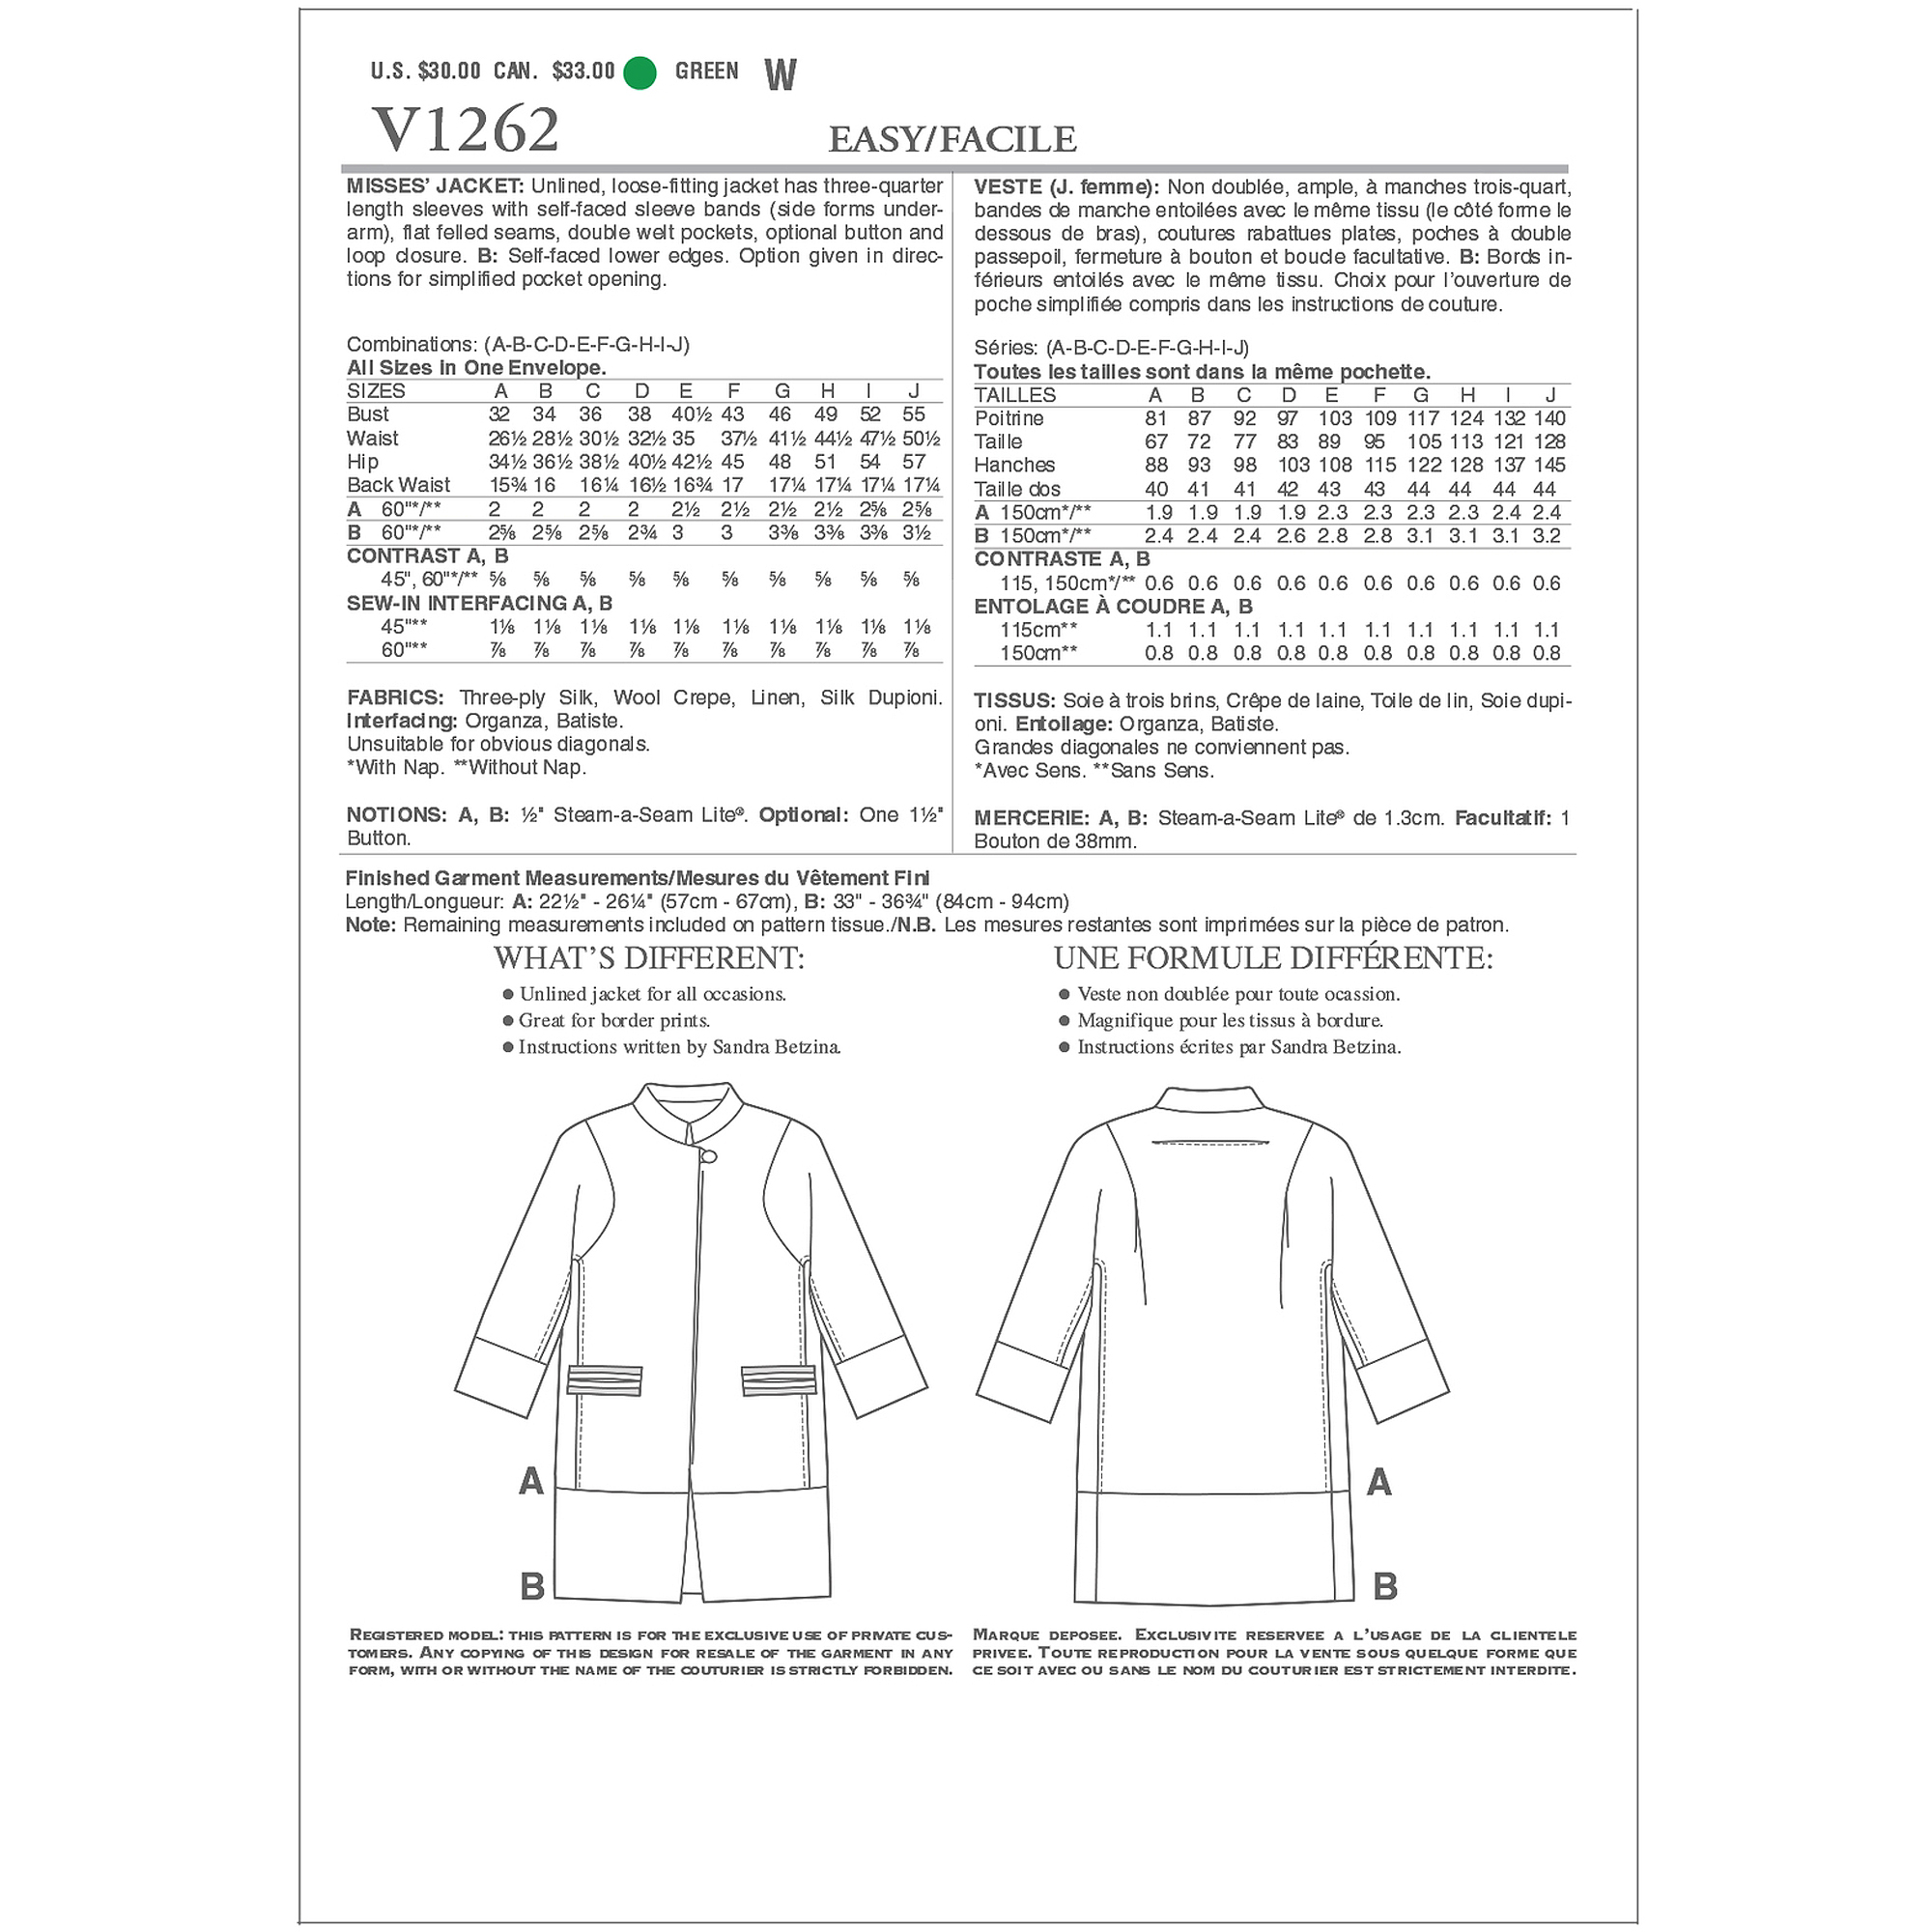 Misses Jacket-All Sizes in One Envelope